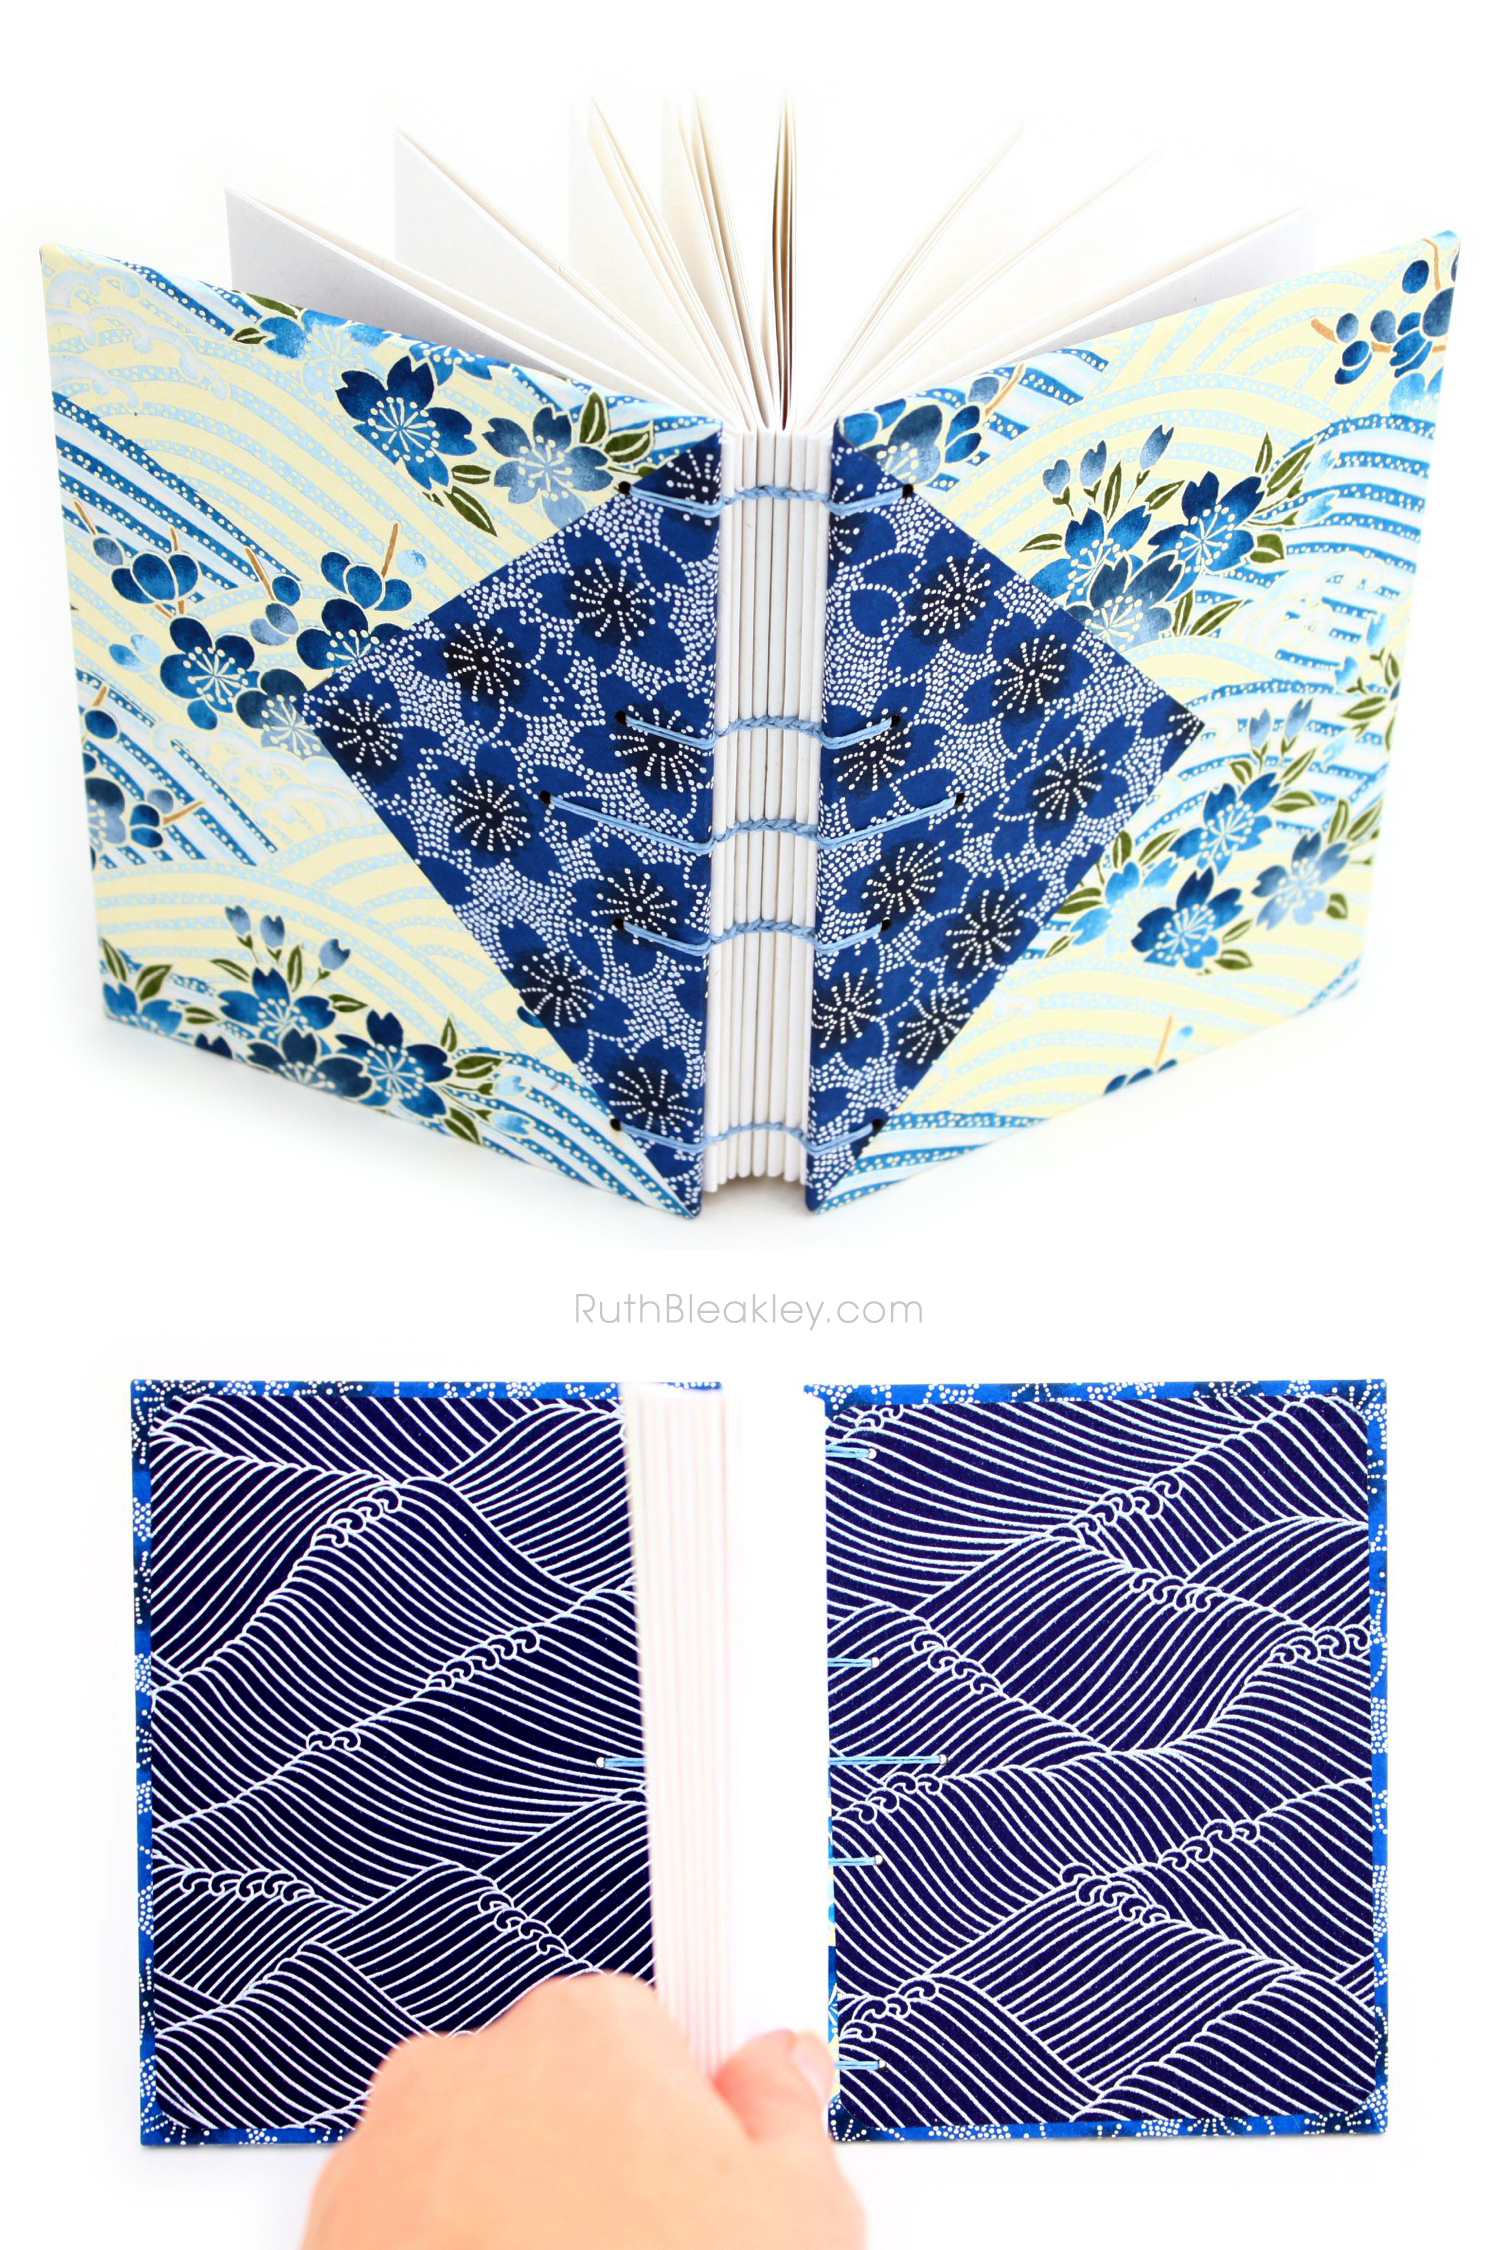 Blue flowers Twin Journals handmade by Ruth Bleakley Coptic Stitch with Japanese Yuzen Paper - 12